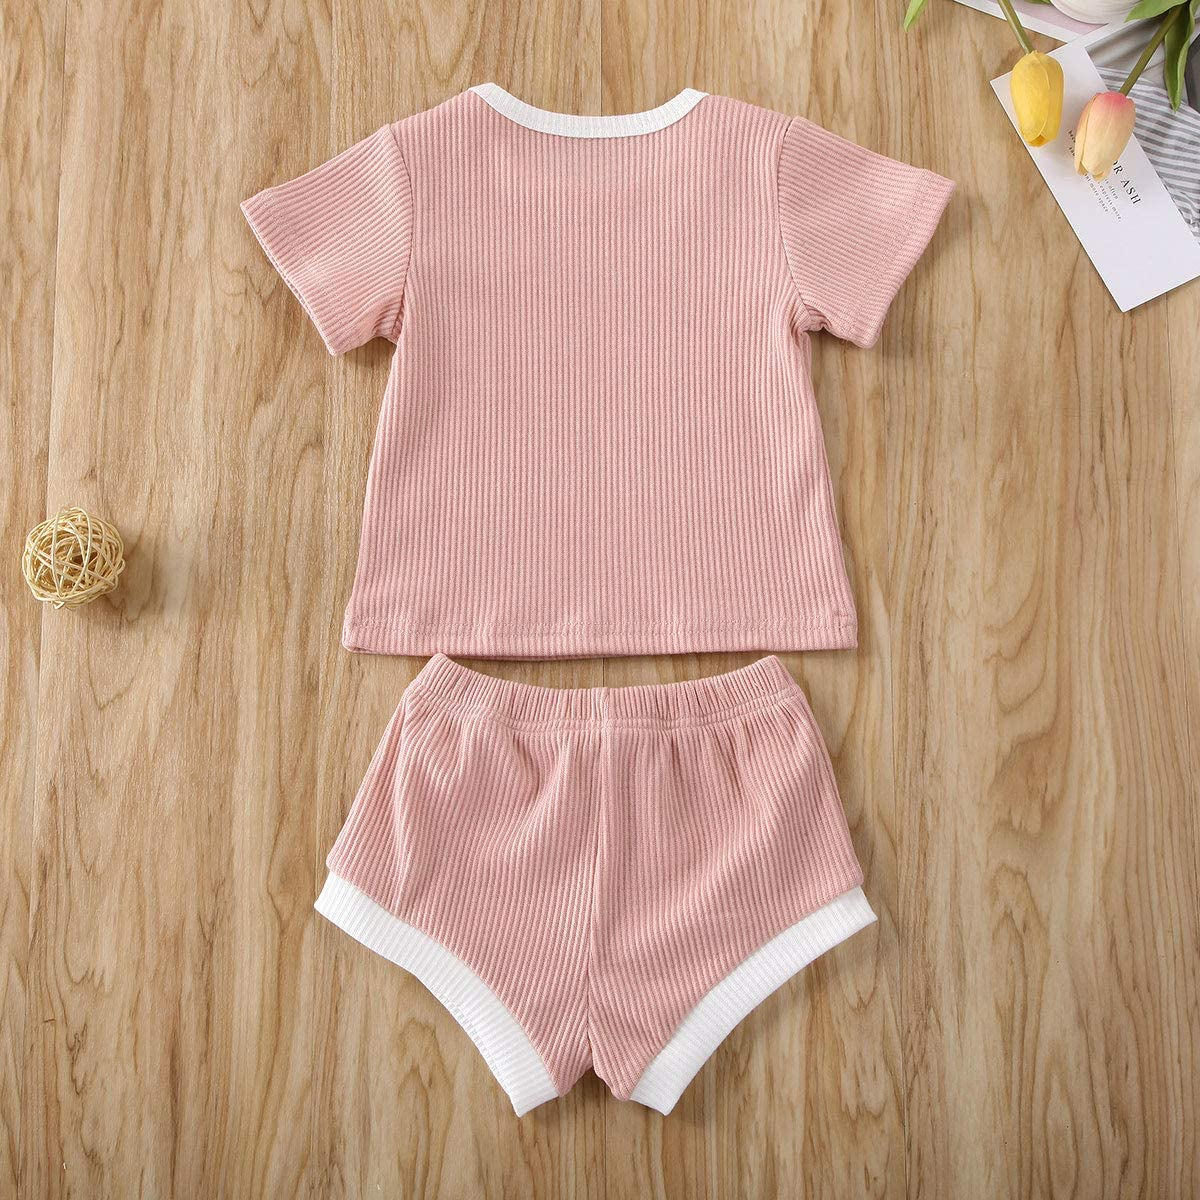 2 PCS Infant Toddler Baby Boys Girls Top Shirt+Drawstring Shorts Clothes Summer Outfits